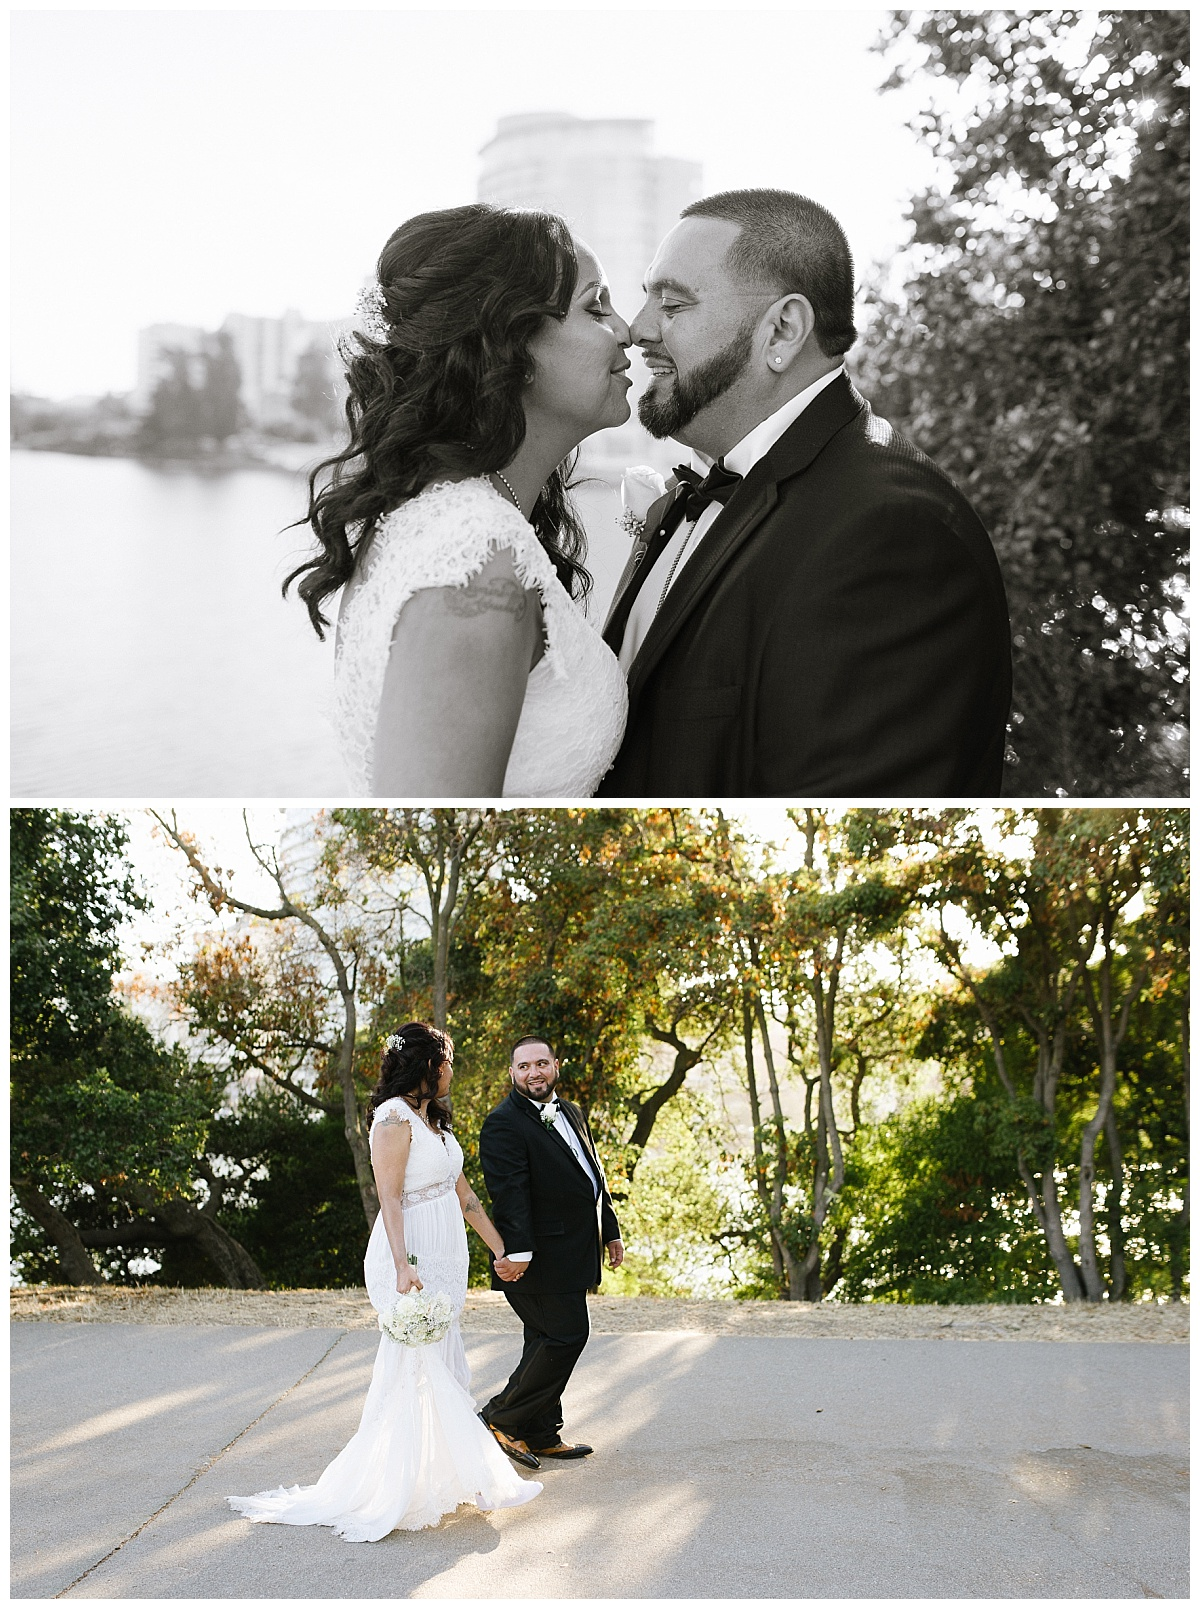 Shauna-Manuel-Lake-Merritt-Wedding_0001